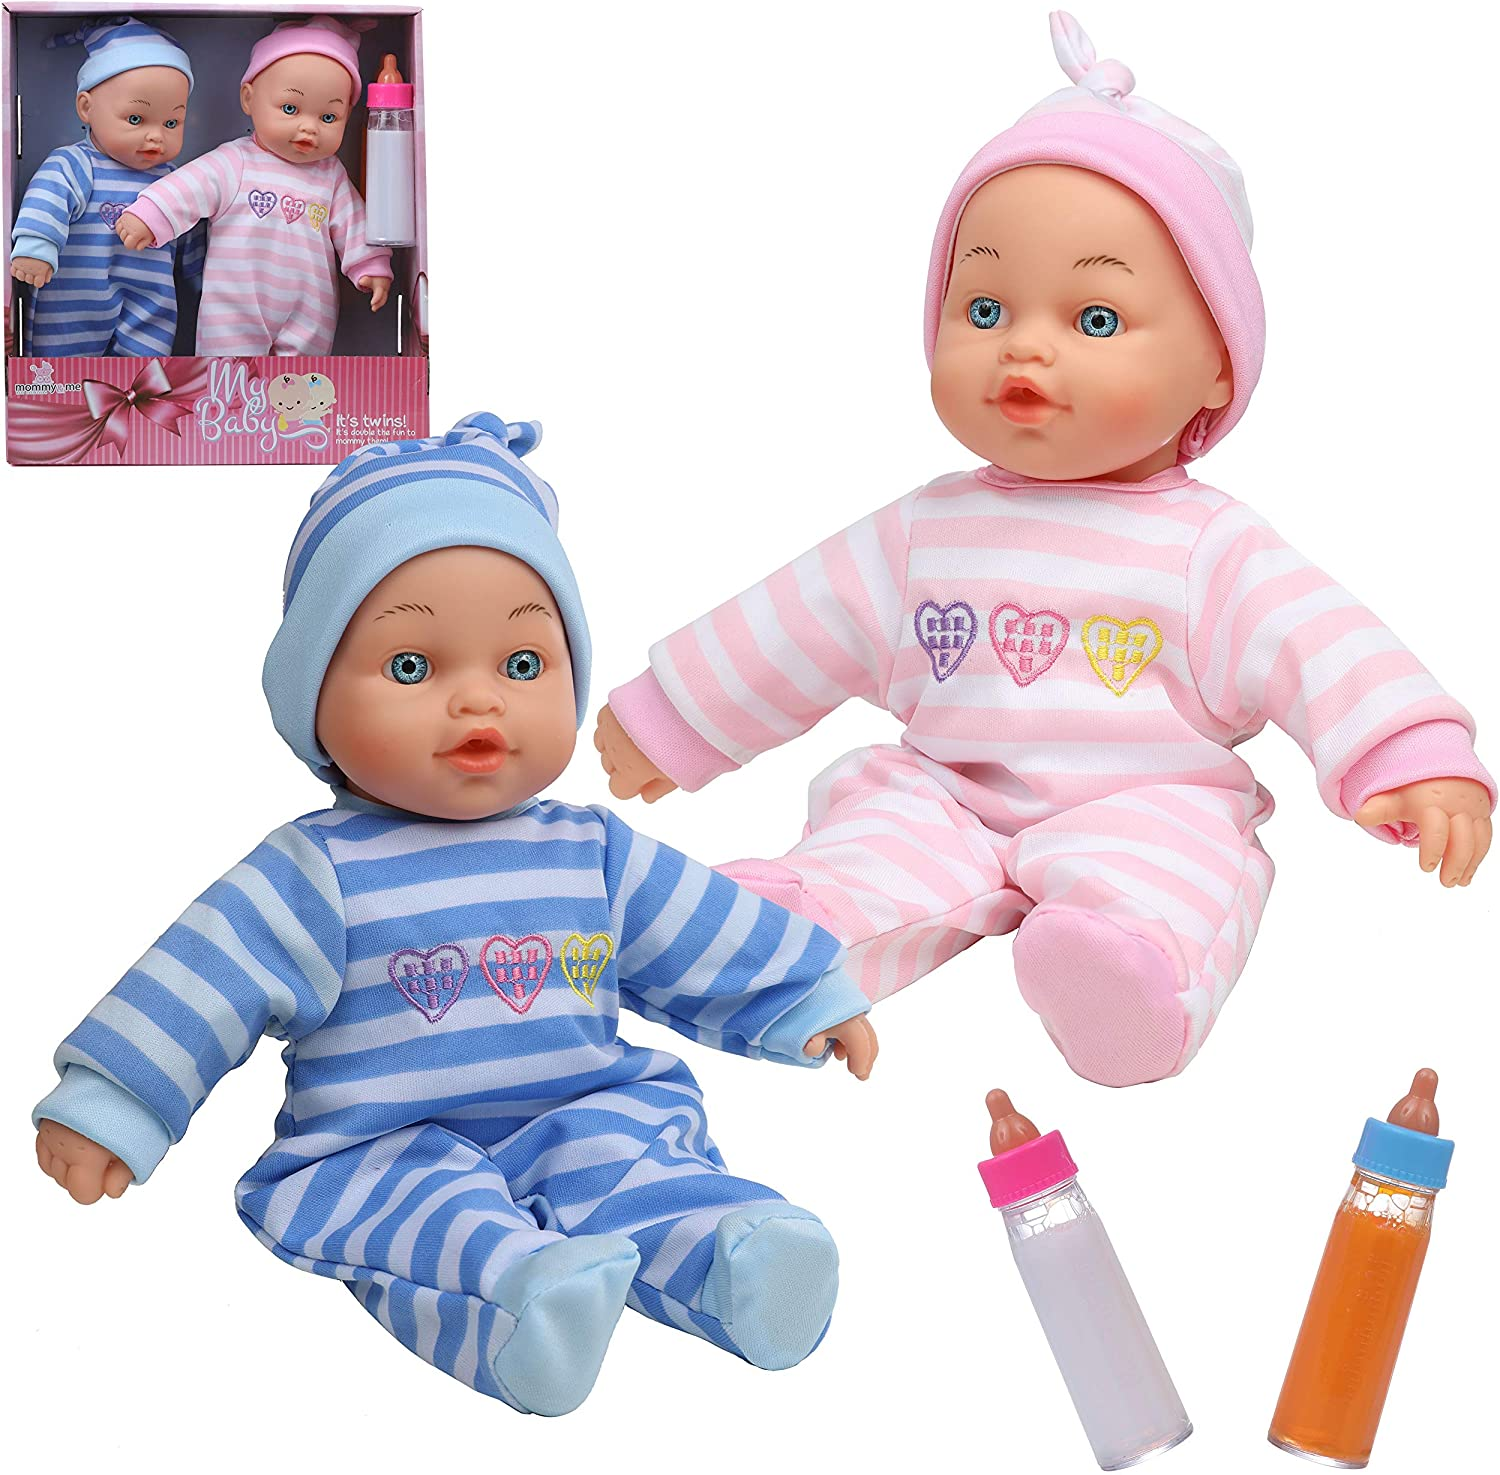 """Mommy & Me 12"""" Twin Baby Dolls Boy and Girl with Matching Rompers and Hats and Magic Disappearing Milk and Juice Bottles Feeding Accessories"""